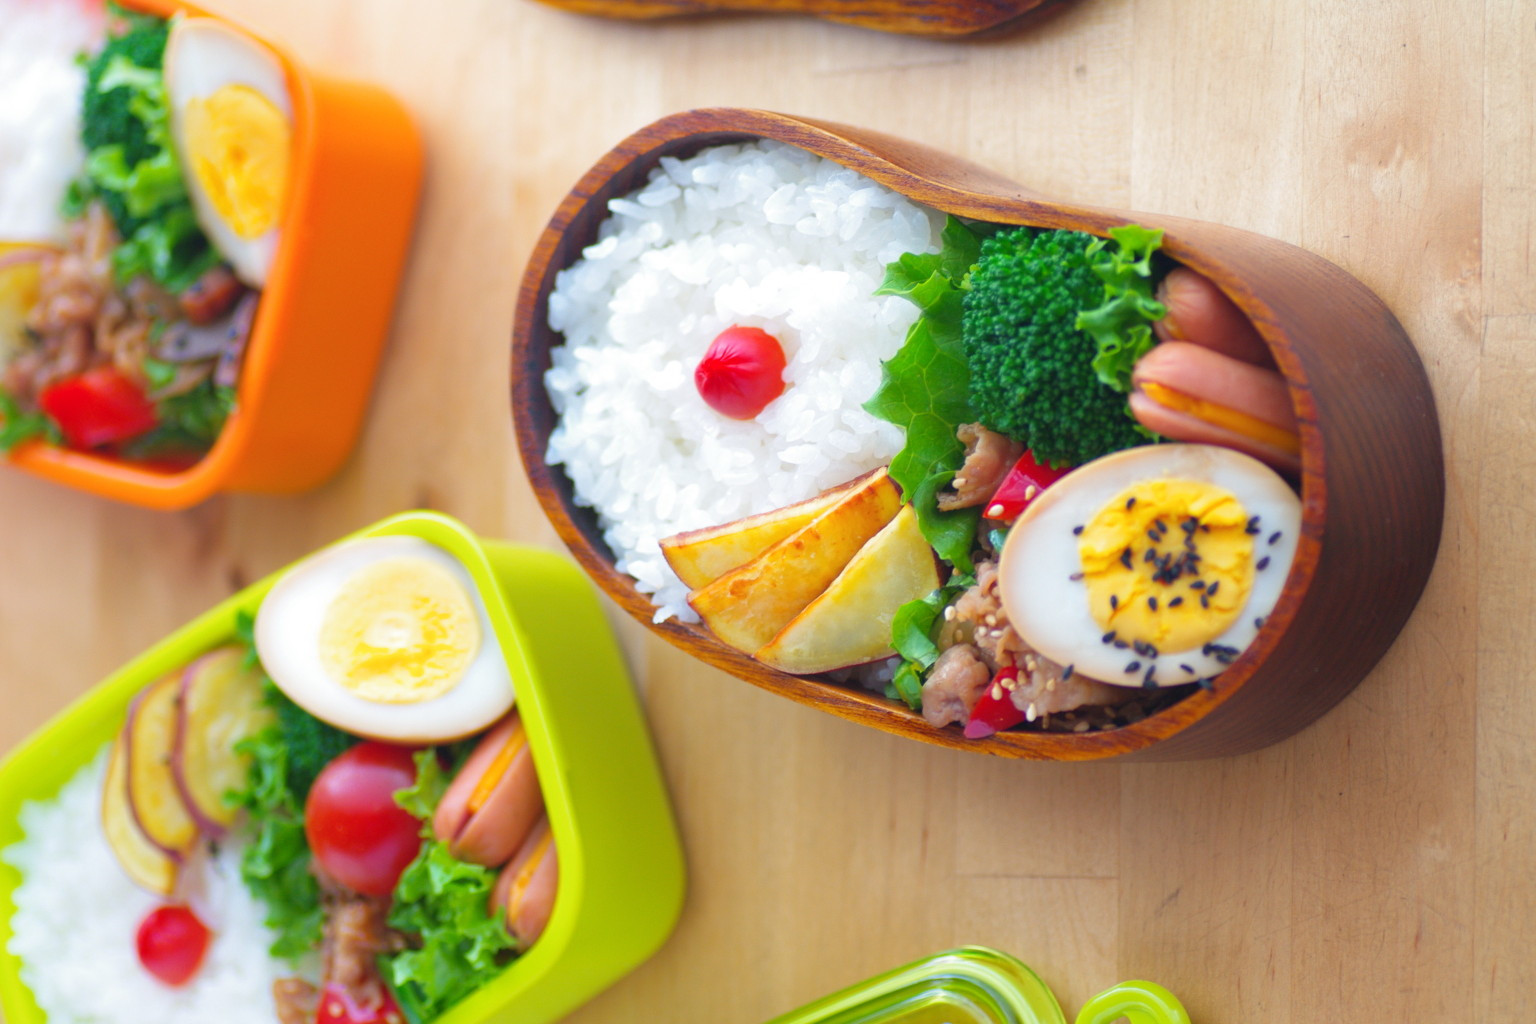 Snacks That Are Healthy  Healthy Snacks 14 Yummy Lunch Box Ideas Your Kids Will Love